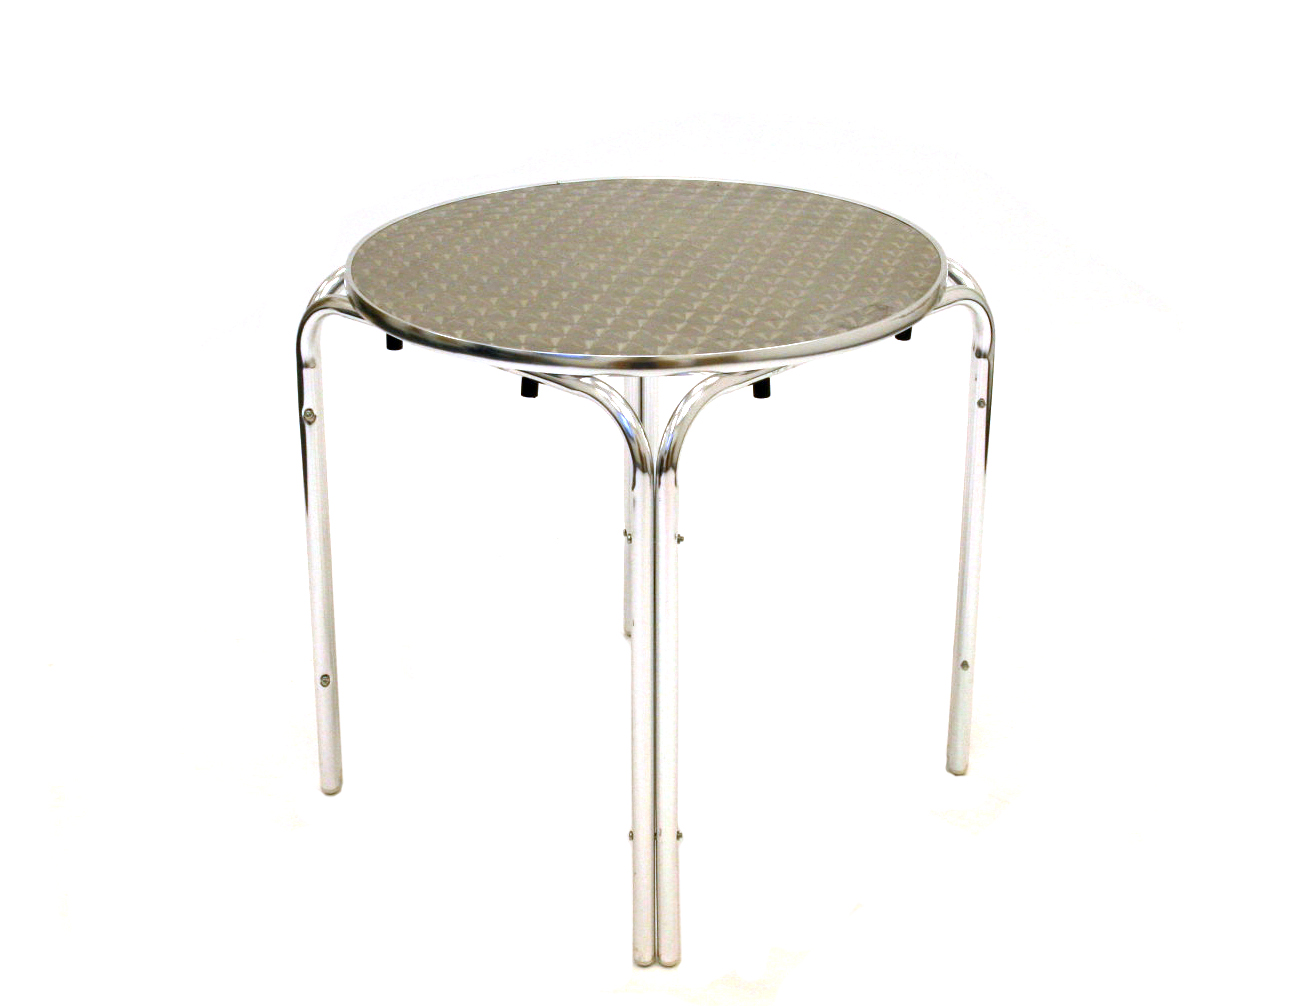 Aluminium Round Tables - Rimmed Edge, 70cm dia - BE Furniture Sales